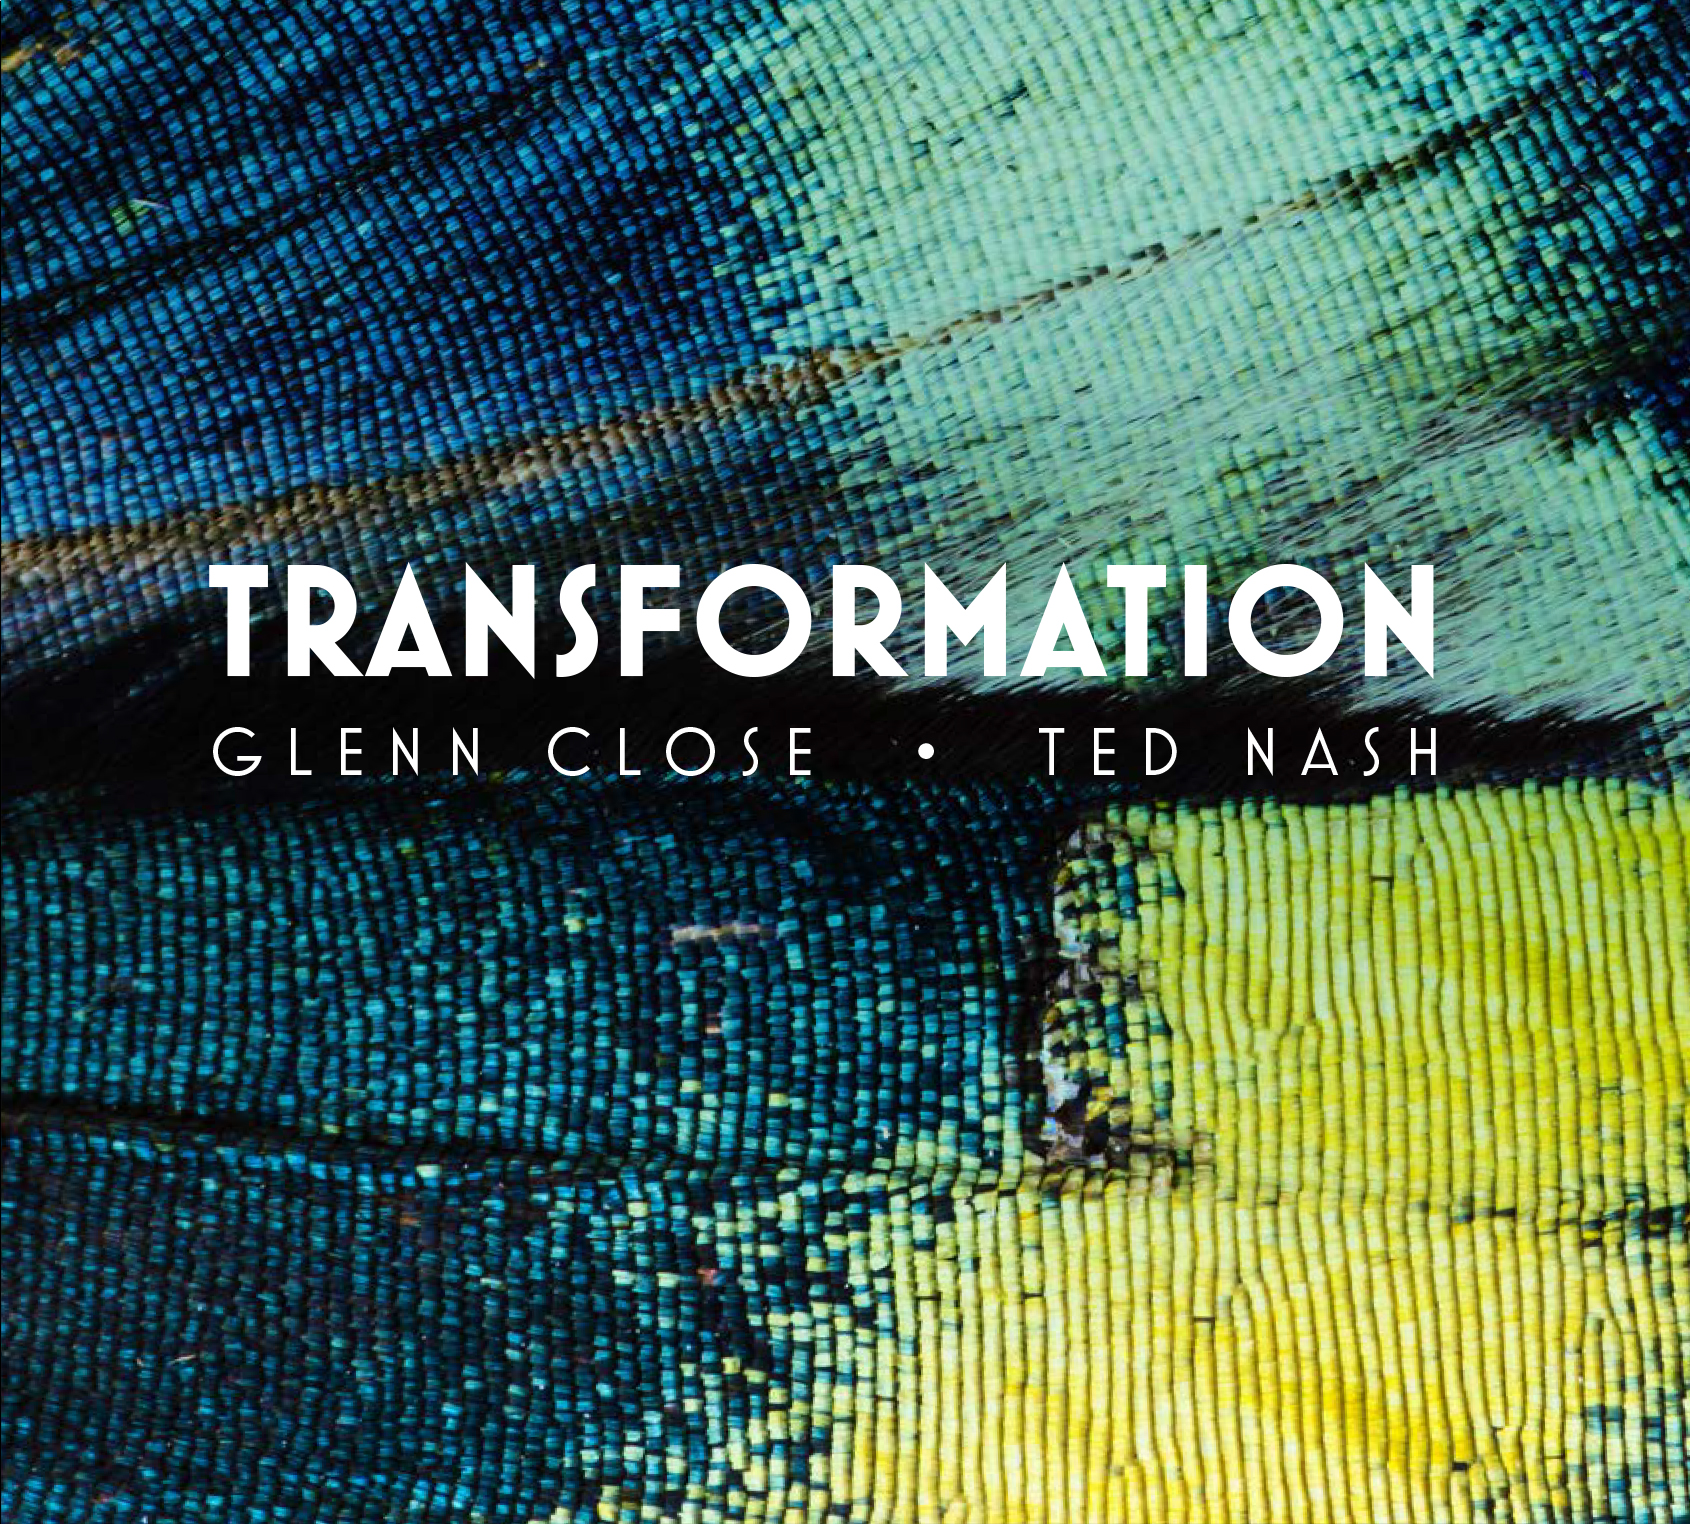 NEW RELEASE: Glenn Close & Ted Nash Present TRANSFORMATION – New Album out May 7, 2021 via Tiger Turn